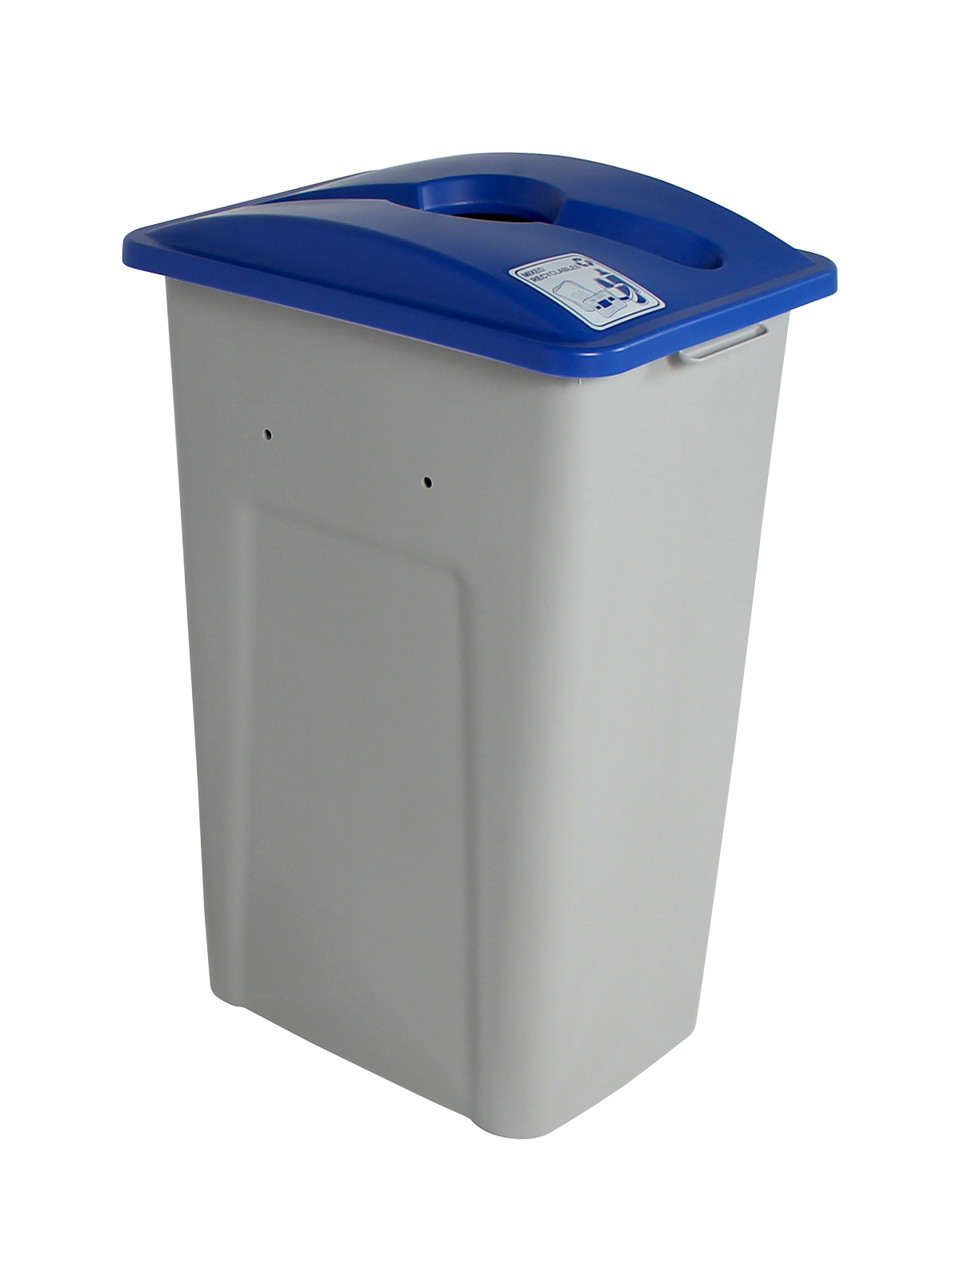 32 Gallon XL Simple Sort Recycling Bin (Mixed Recyclables)